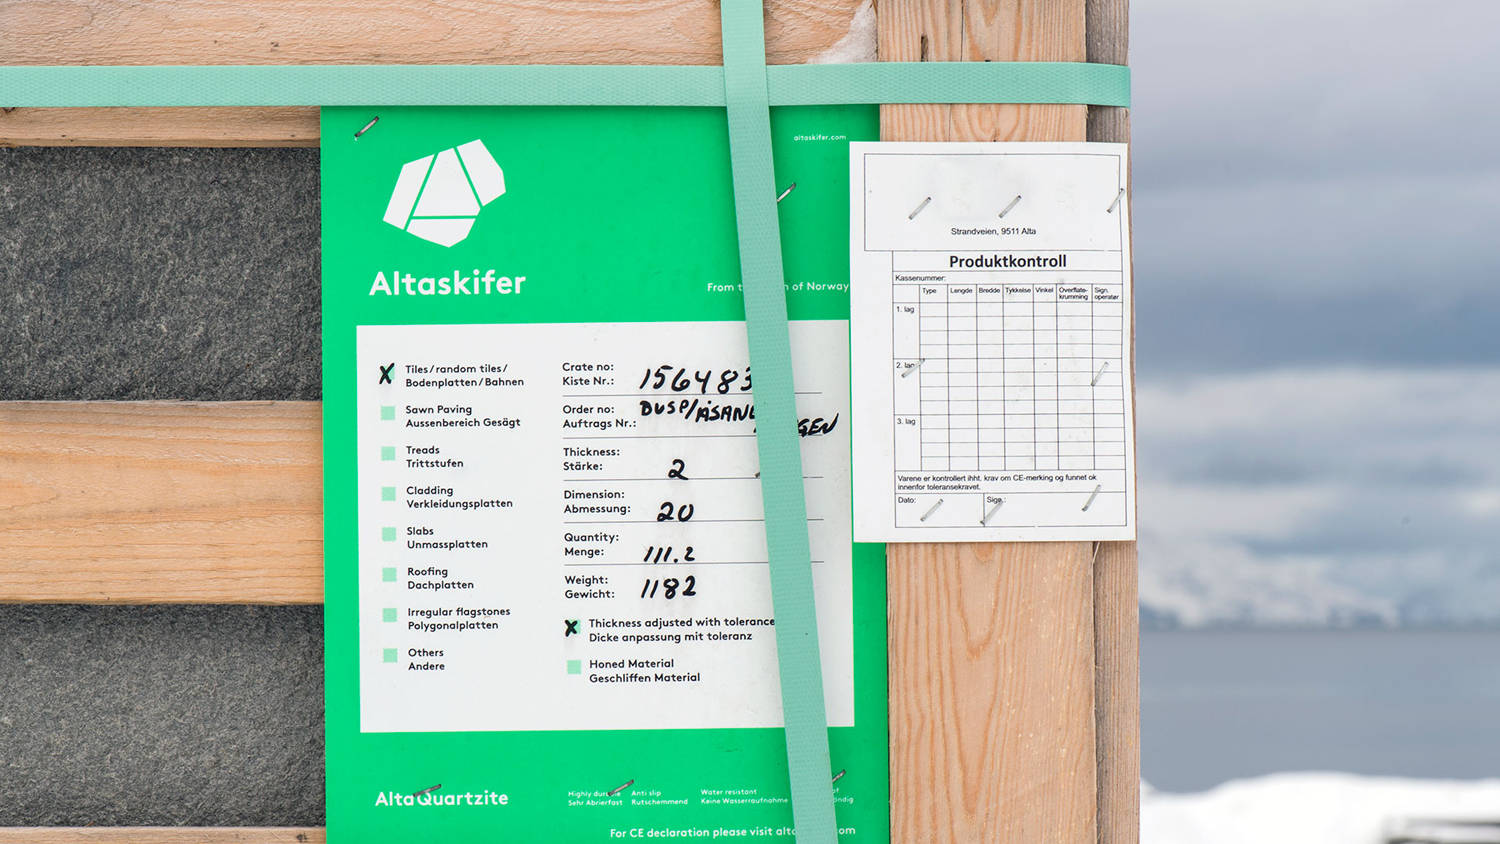 Brand identity and labelling for Alta Quartzite mining and sales business Altaskifer designed by Neue, Norway